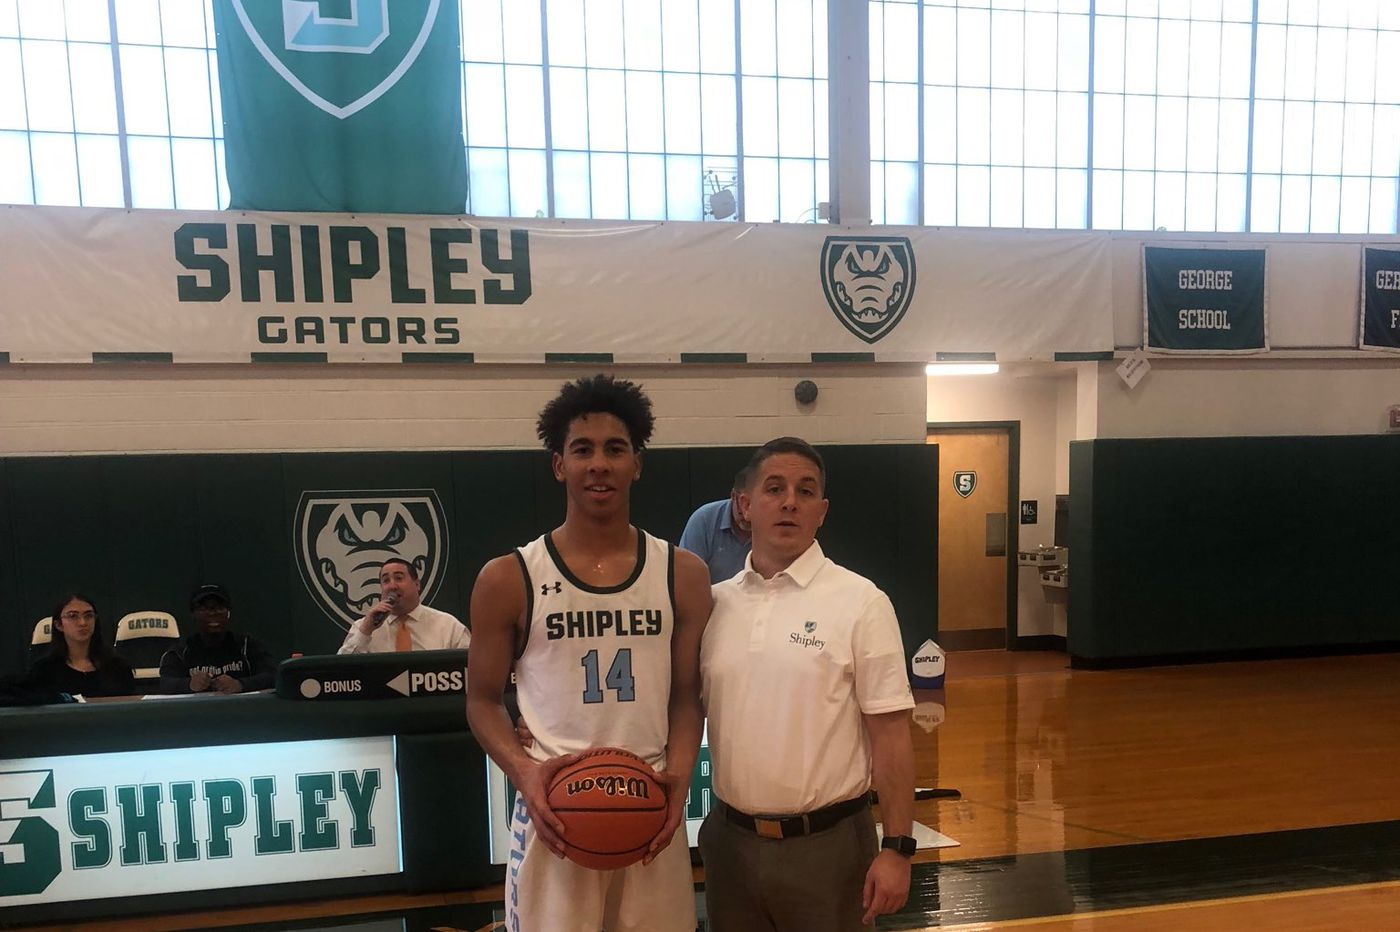 Monday's Southeastern Pa. roundup: Khai Champion scores 1,000th career point in Shipley's win over Palumbo